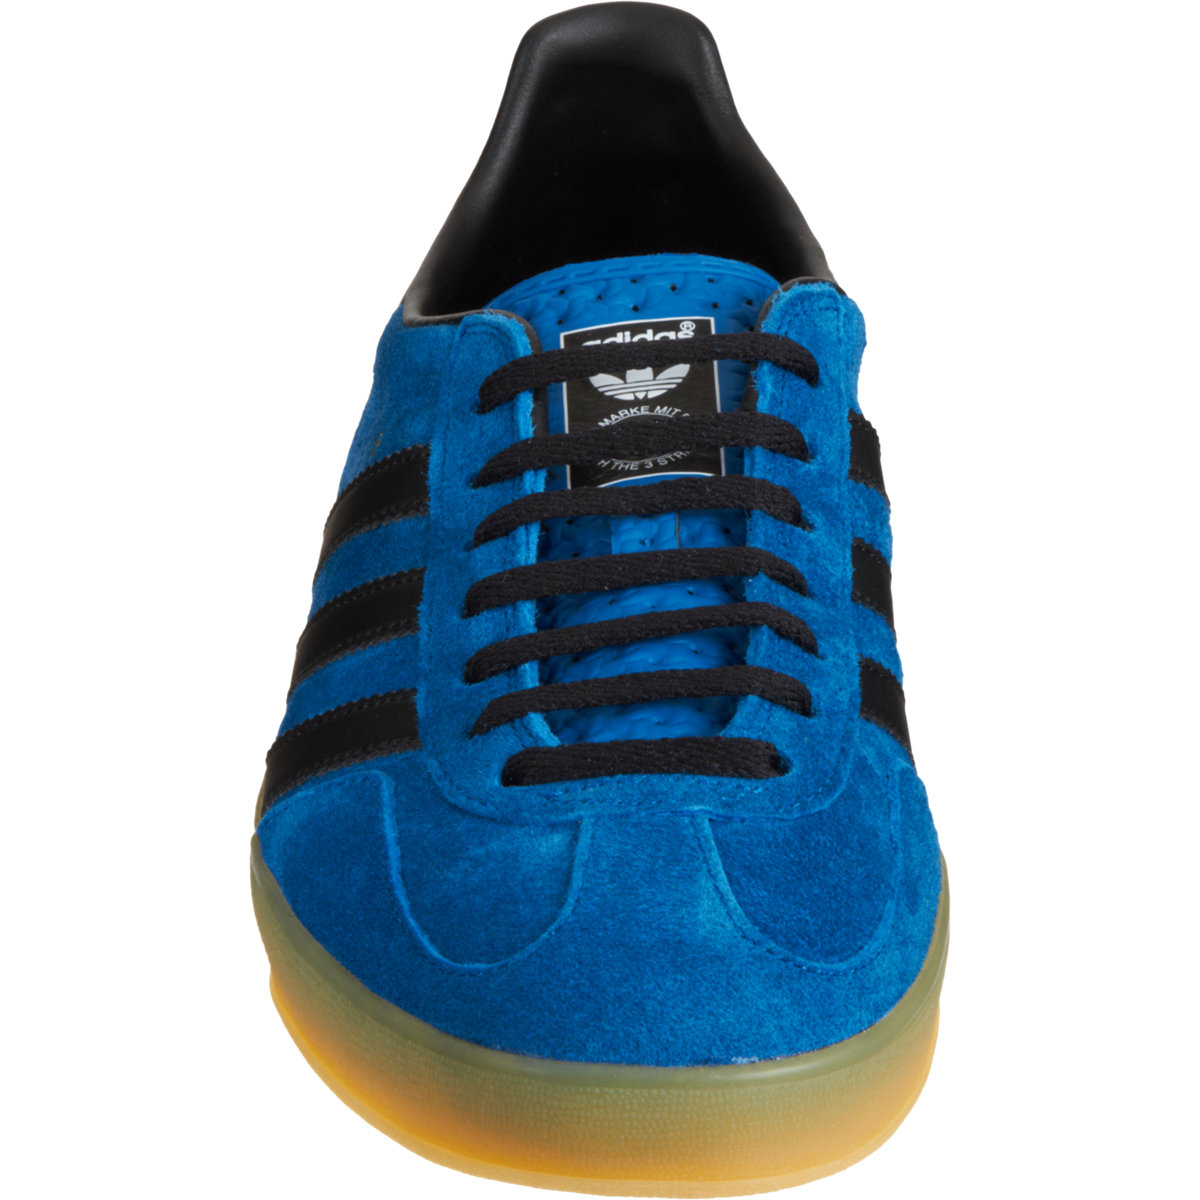 Adidas Gazelle Indoor Royal Blue Black